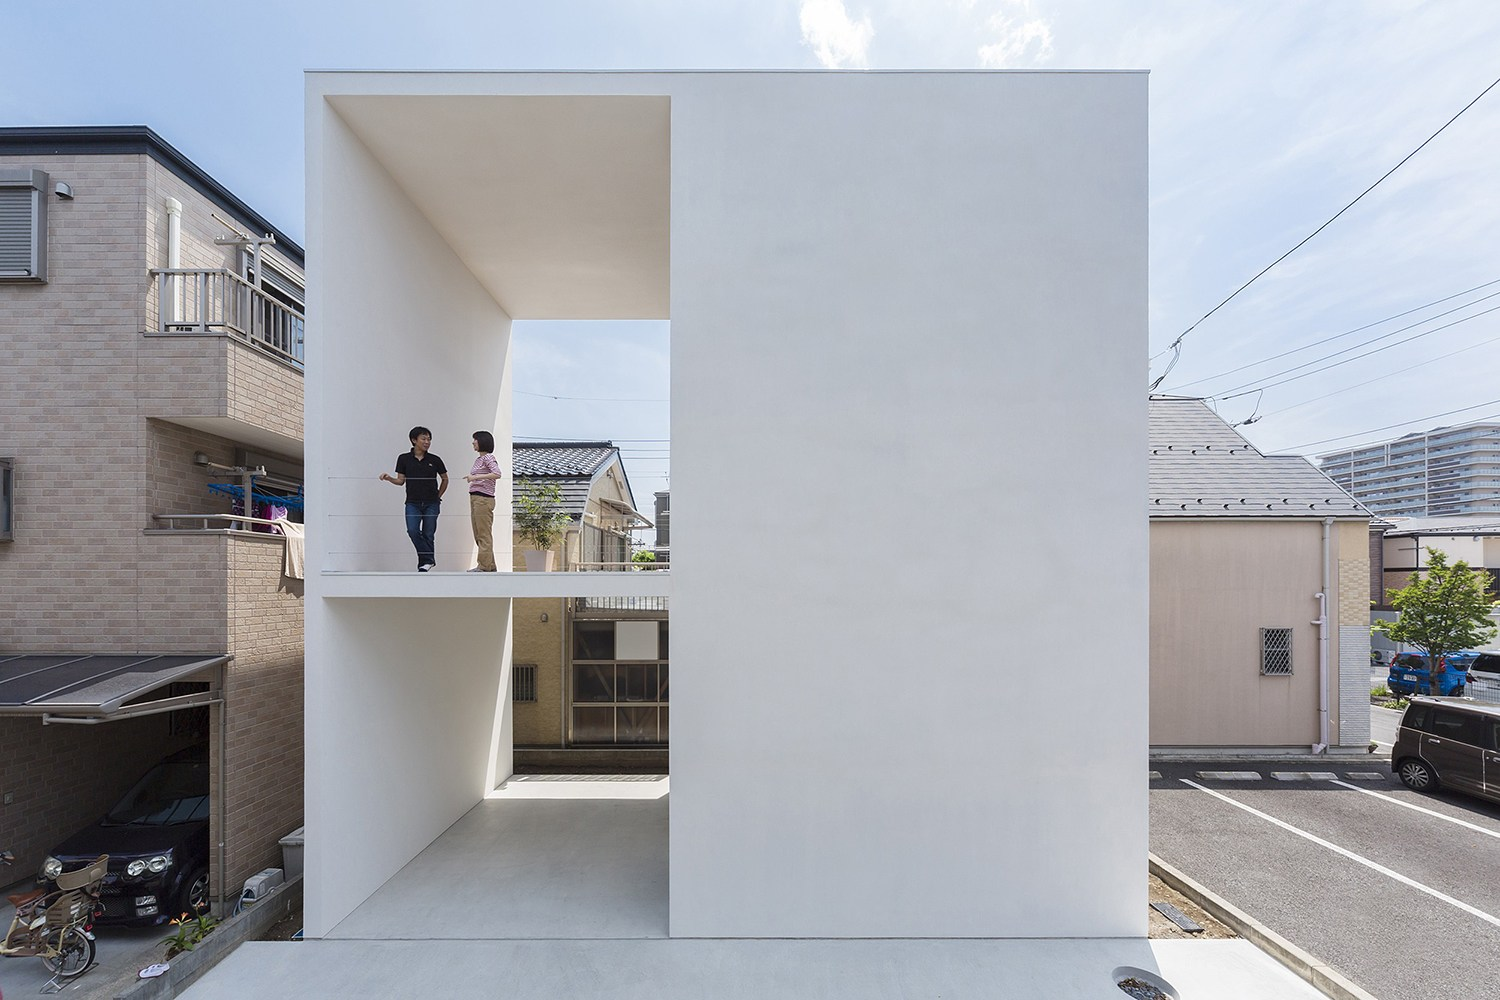 little_house_with_a_big_terrace_by_takuro_yamamoto_1.jpg